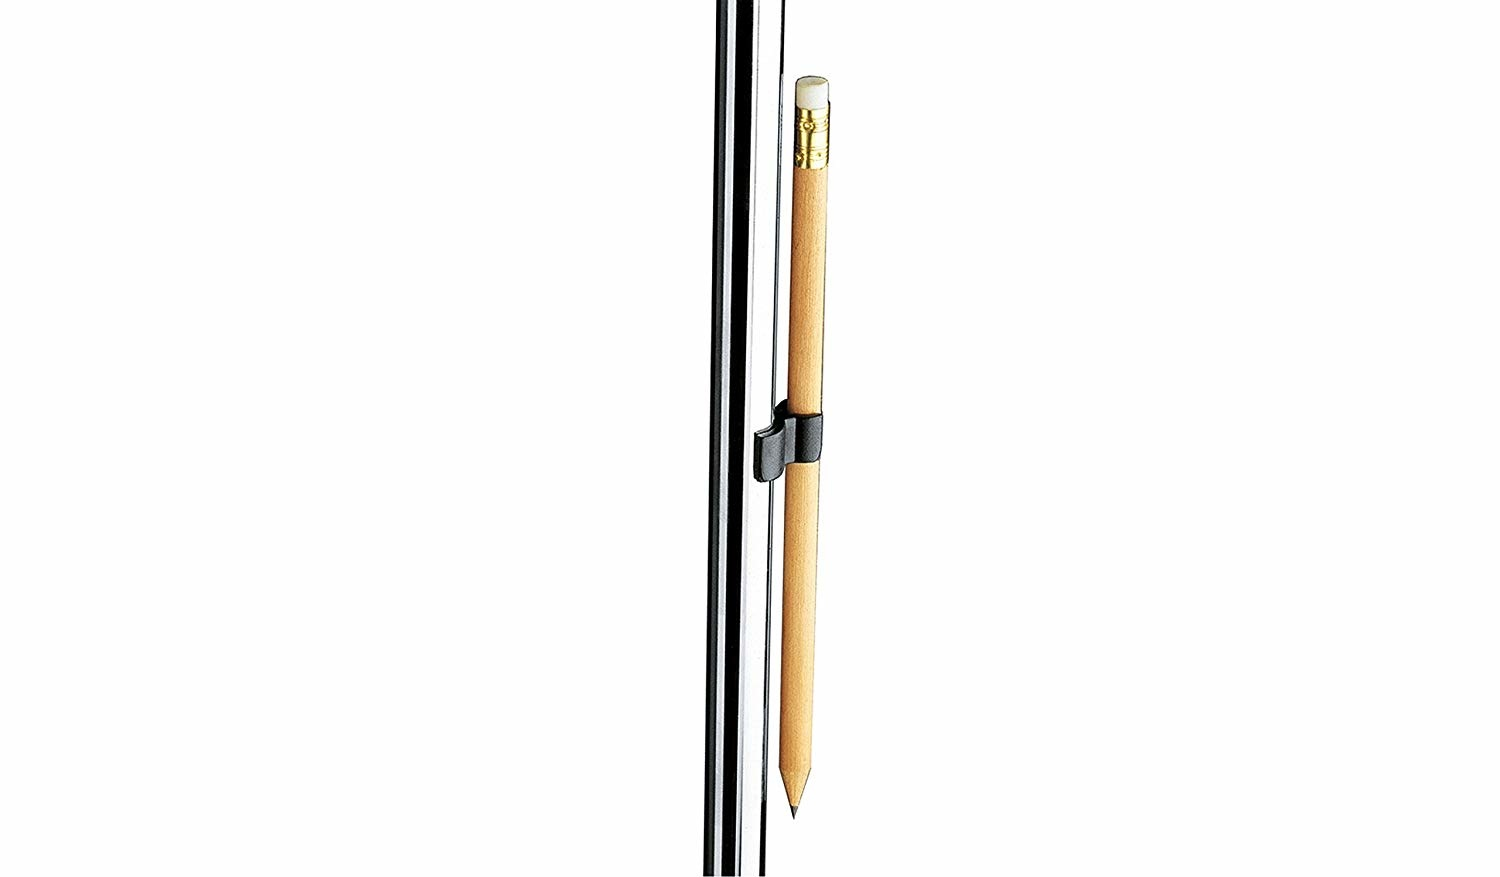 K&M Small Music Stand Pencil Clip 13-15mm